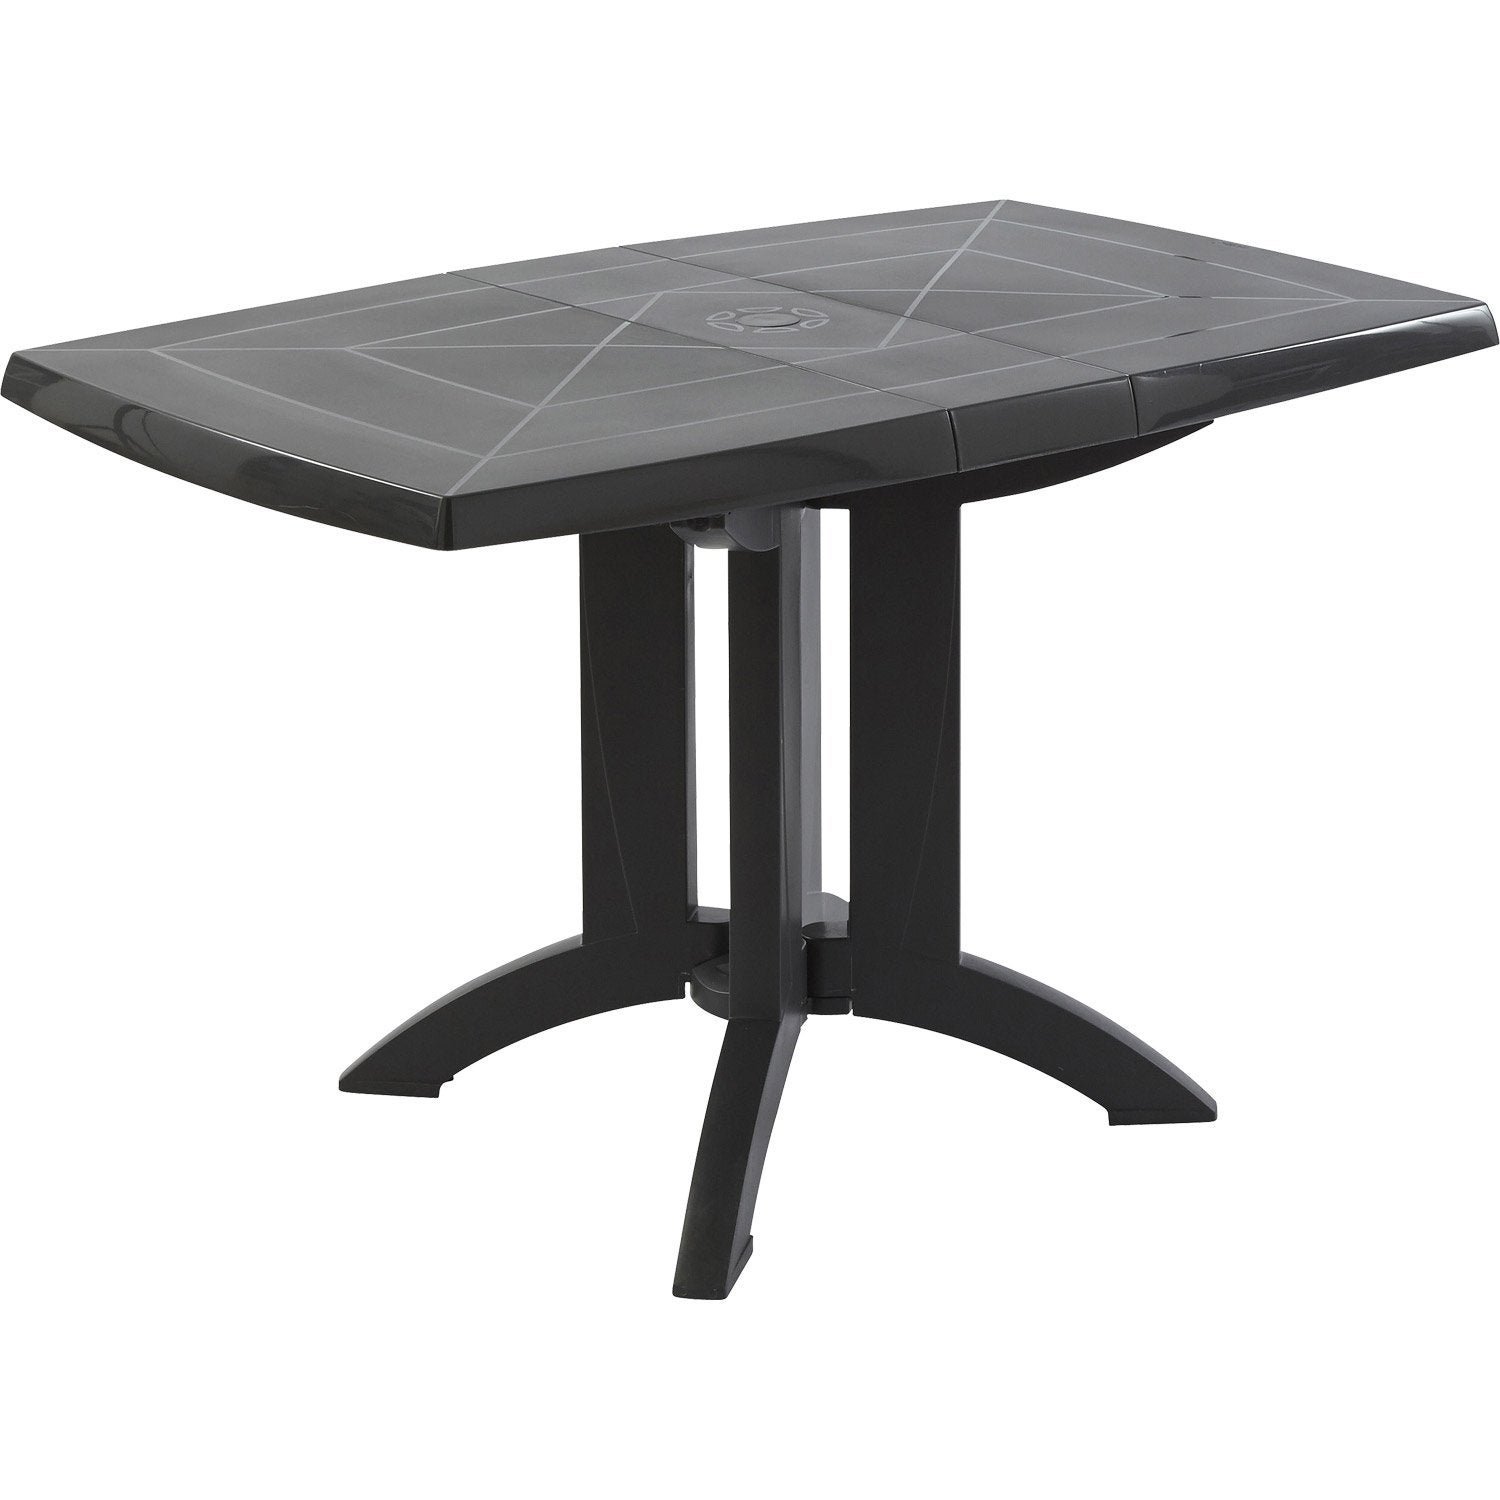 Table de jardin grosfillex v ga rectangulaire anthracite 4 personnes leroy merlin - Table de jardin extensible en plastique ...